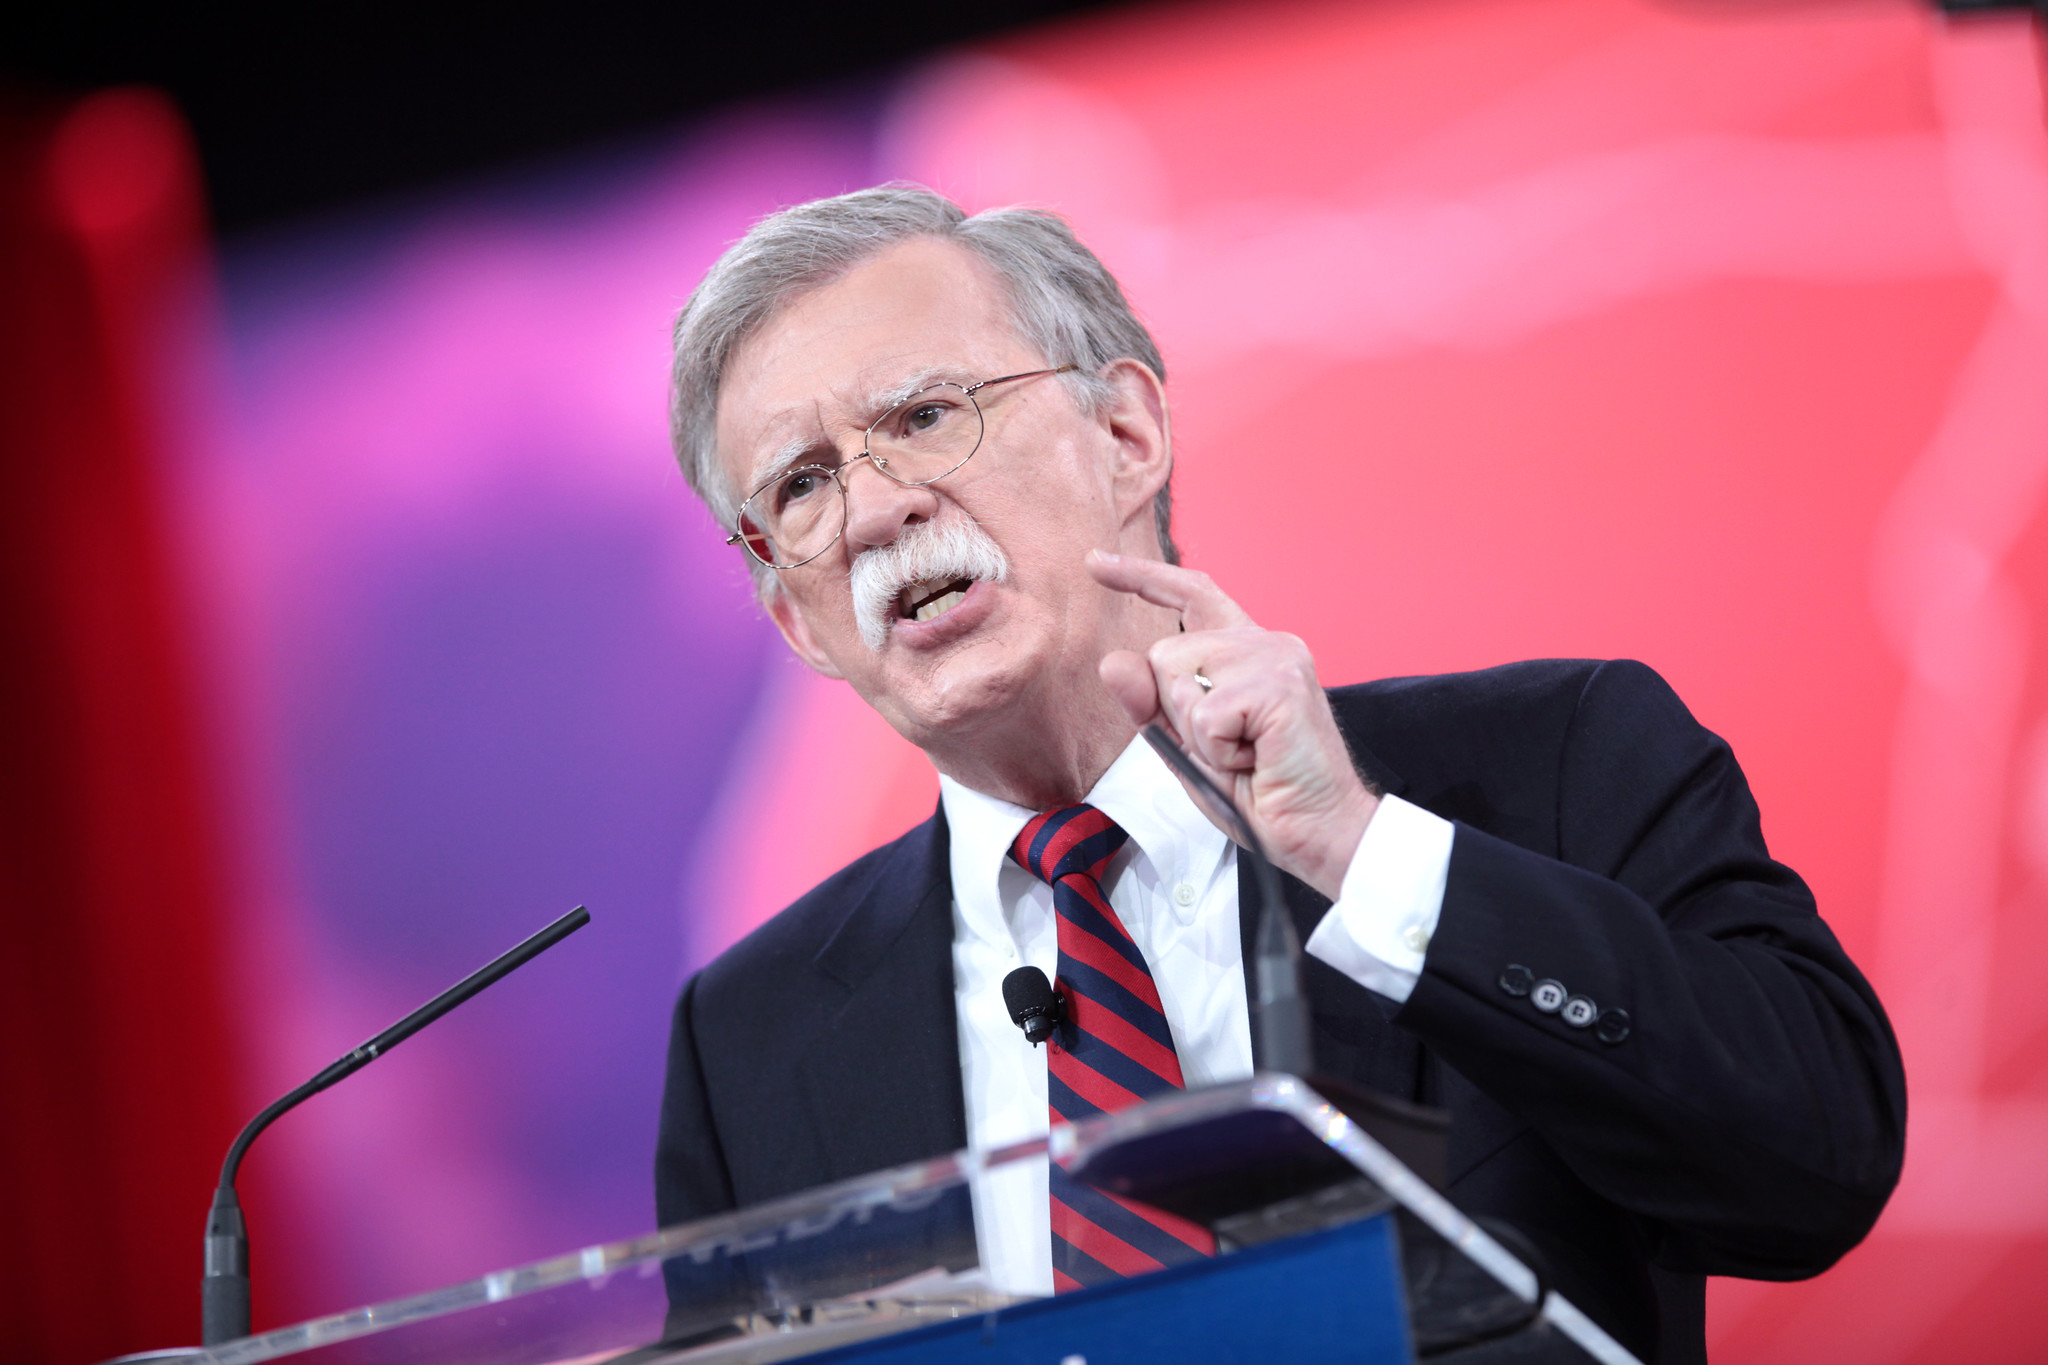 NeoCon Hack John Bolton Calls on GOP to Purge Trumpism - Planet Free Will